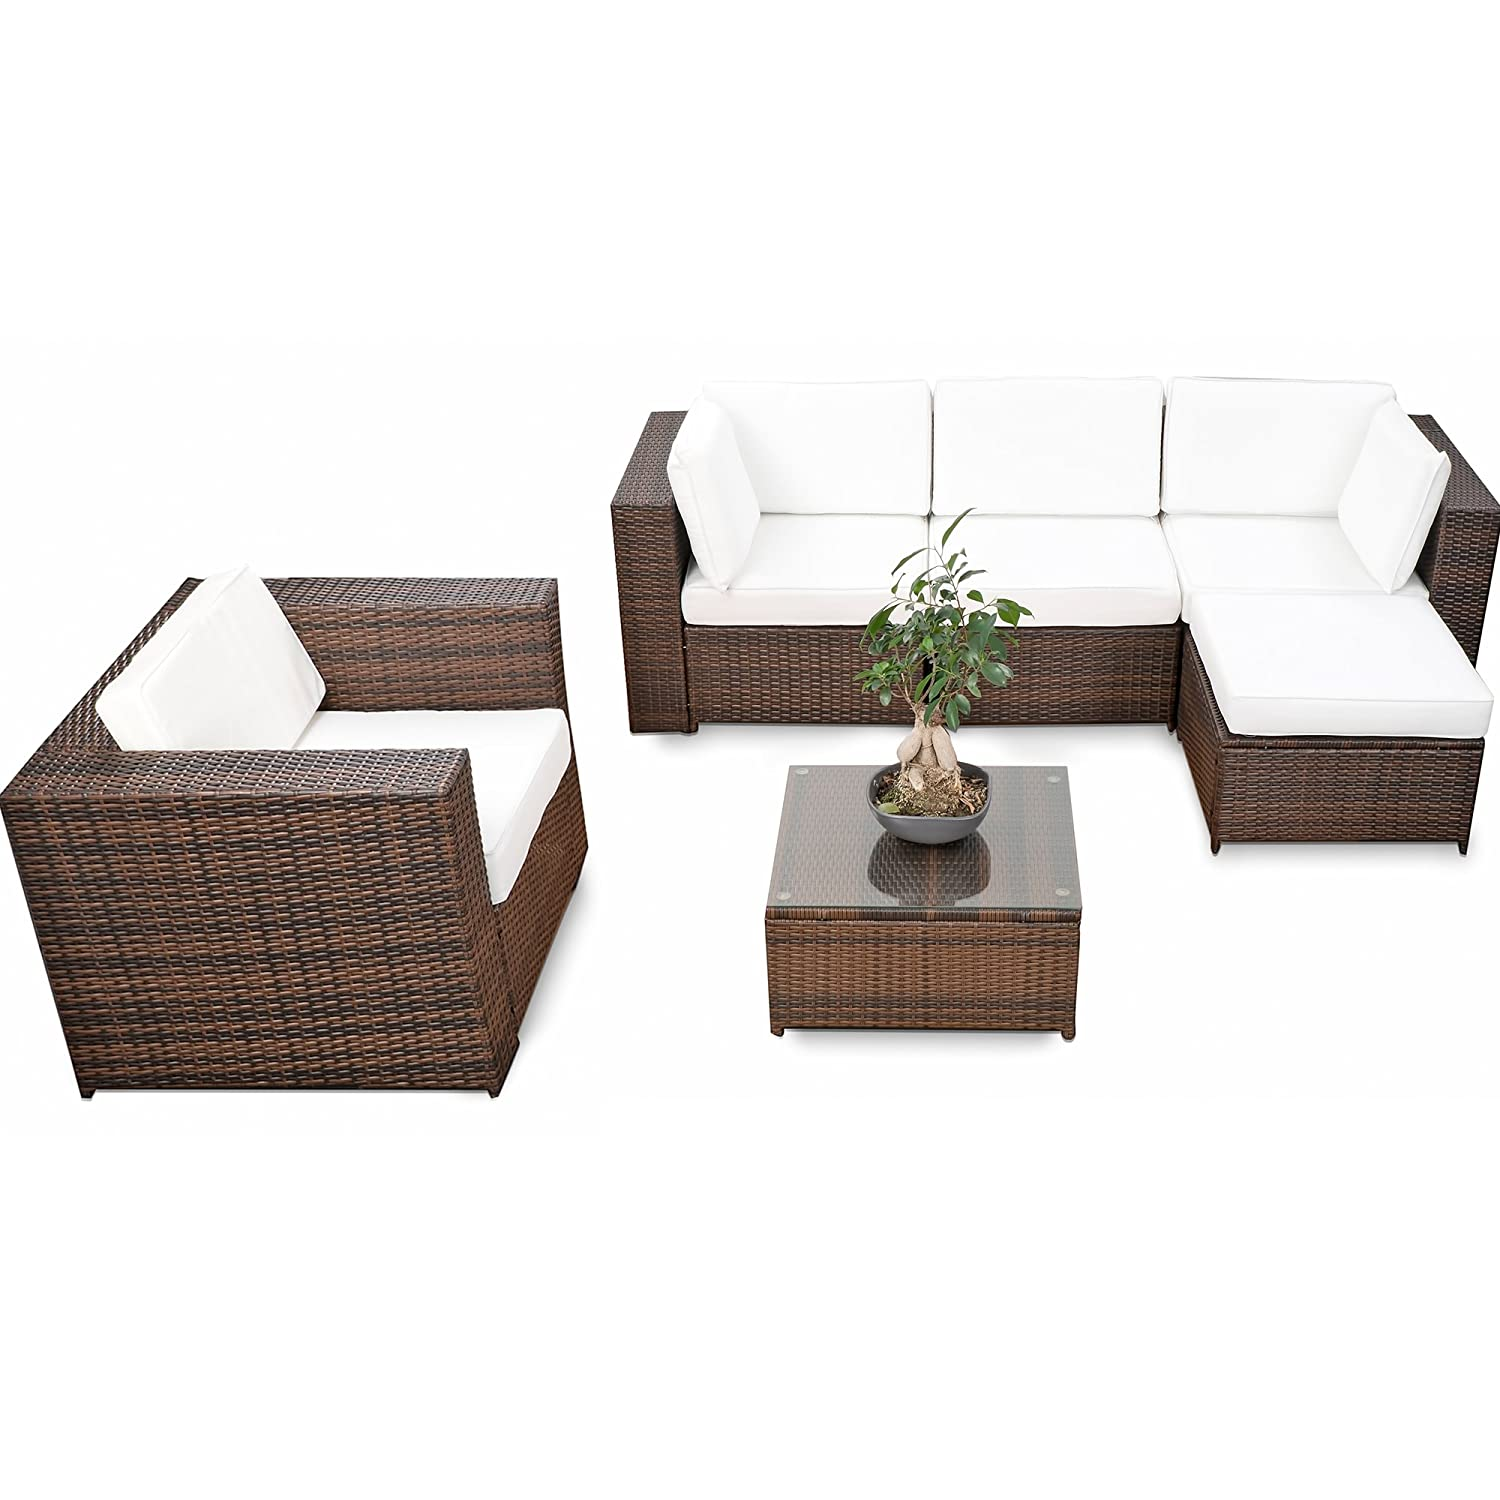 erweiterbares 18tlg eck lounge set polyrattan braun mix garnitur gartenm bel sitzgruppe. Black Bedroom Furniture Sets. Home Design Ideas